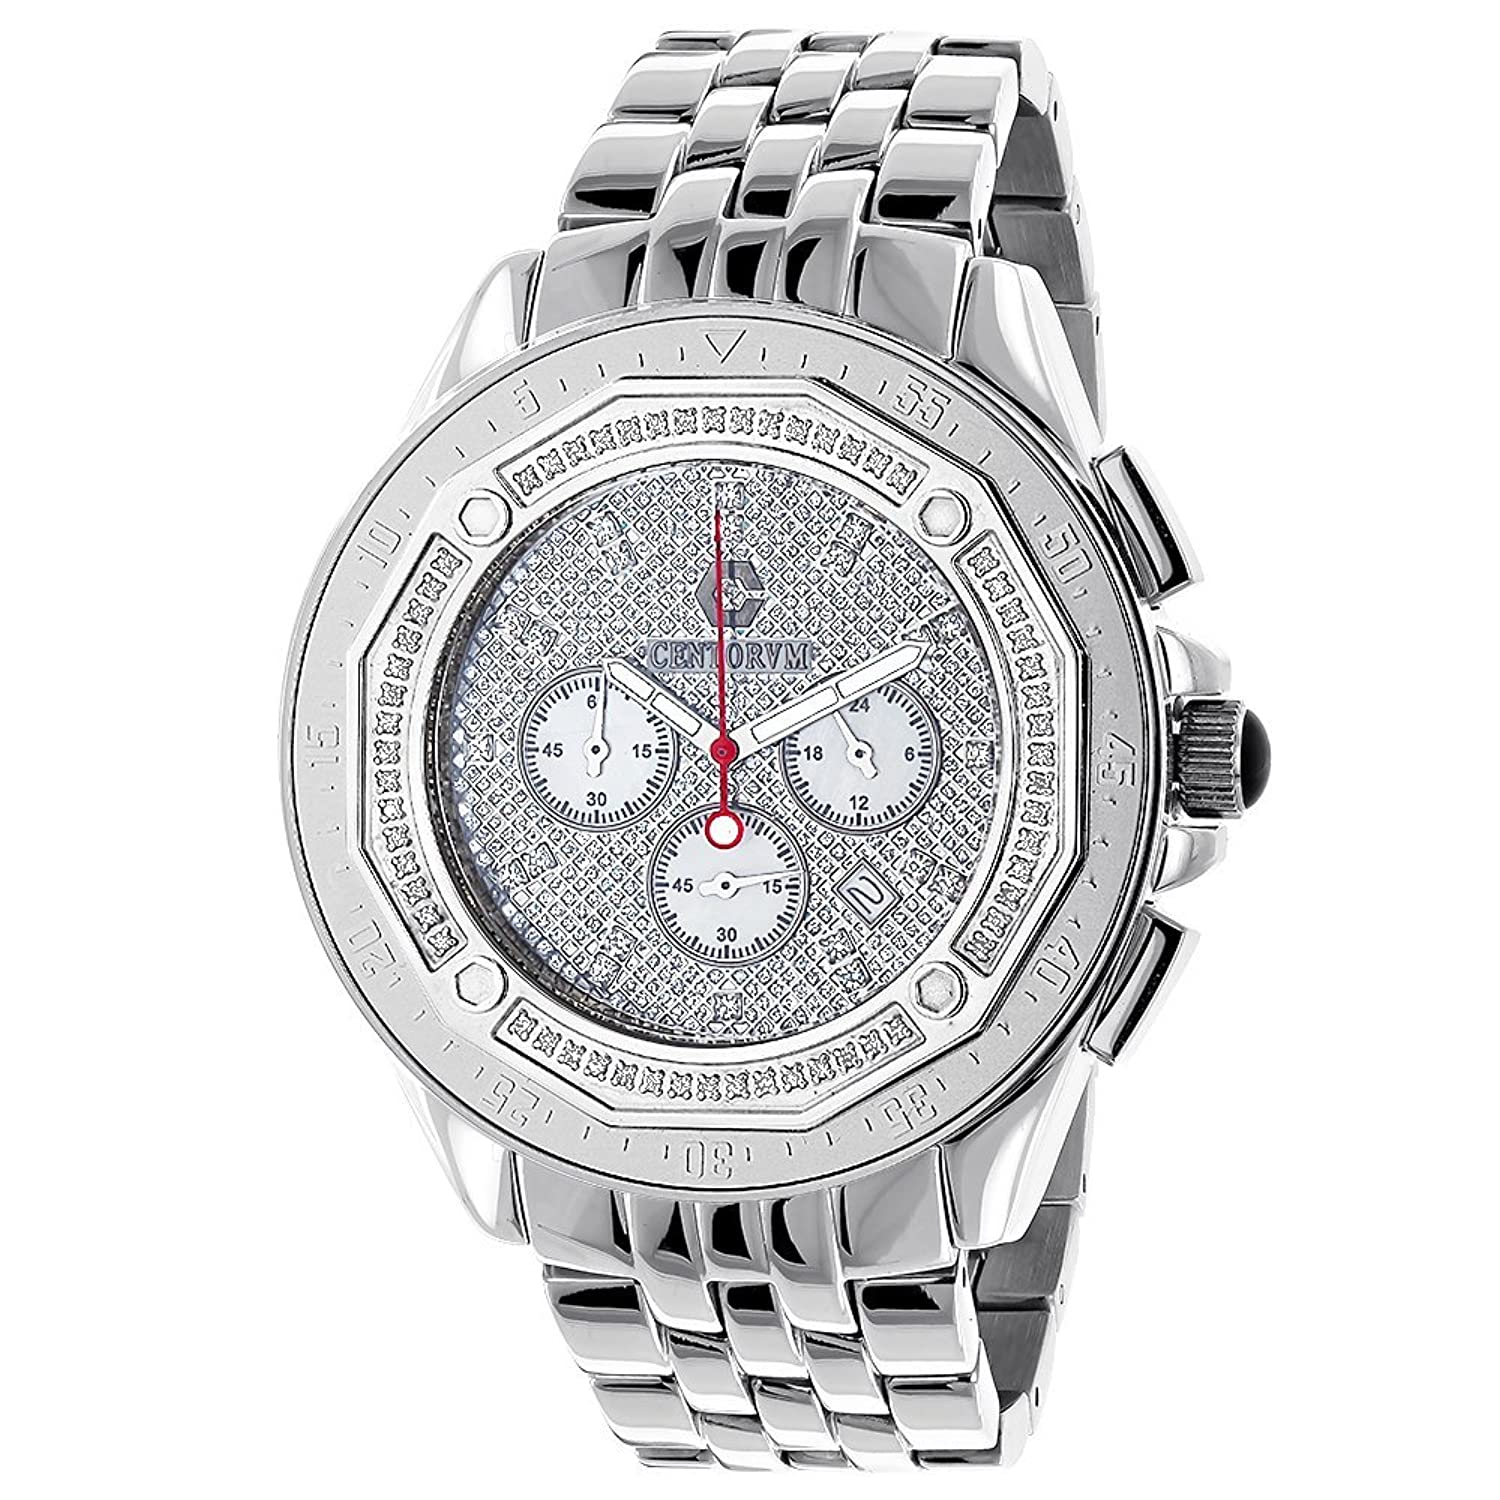 Centorum Mens Diamond Watches 0.55ct Falcon Chronograph